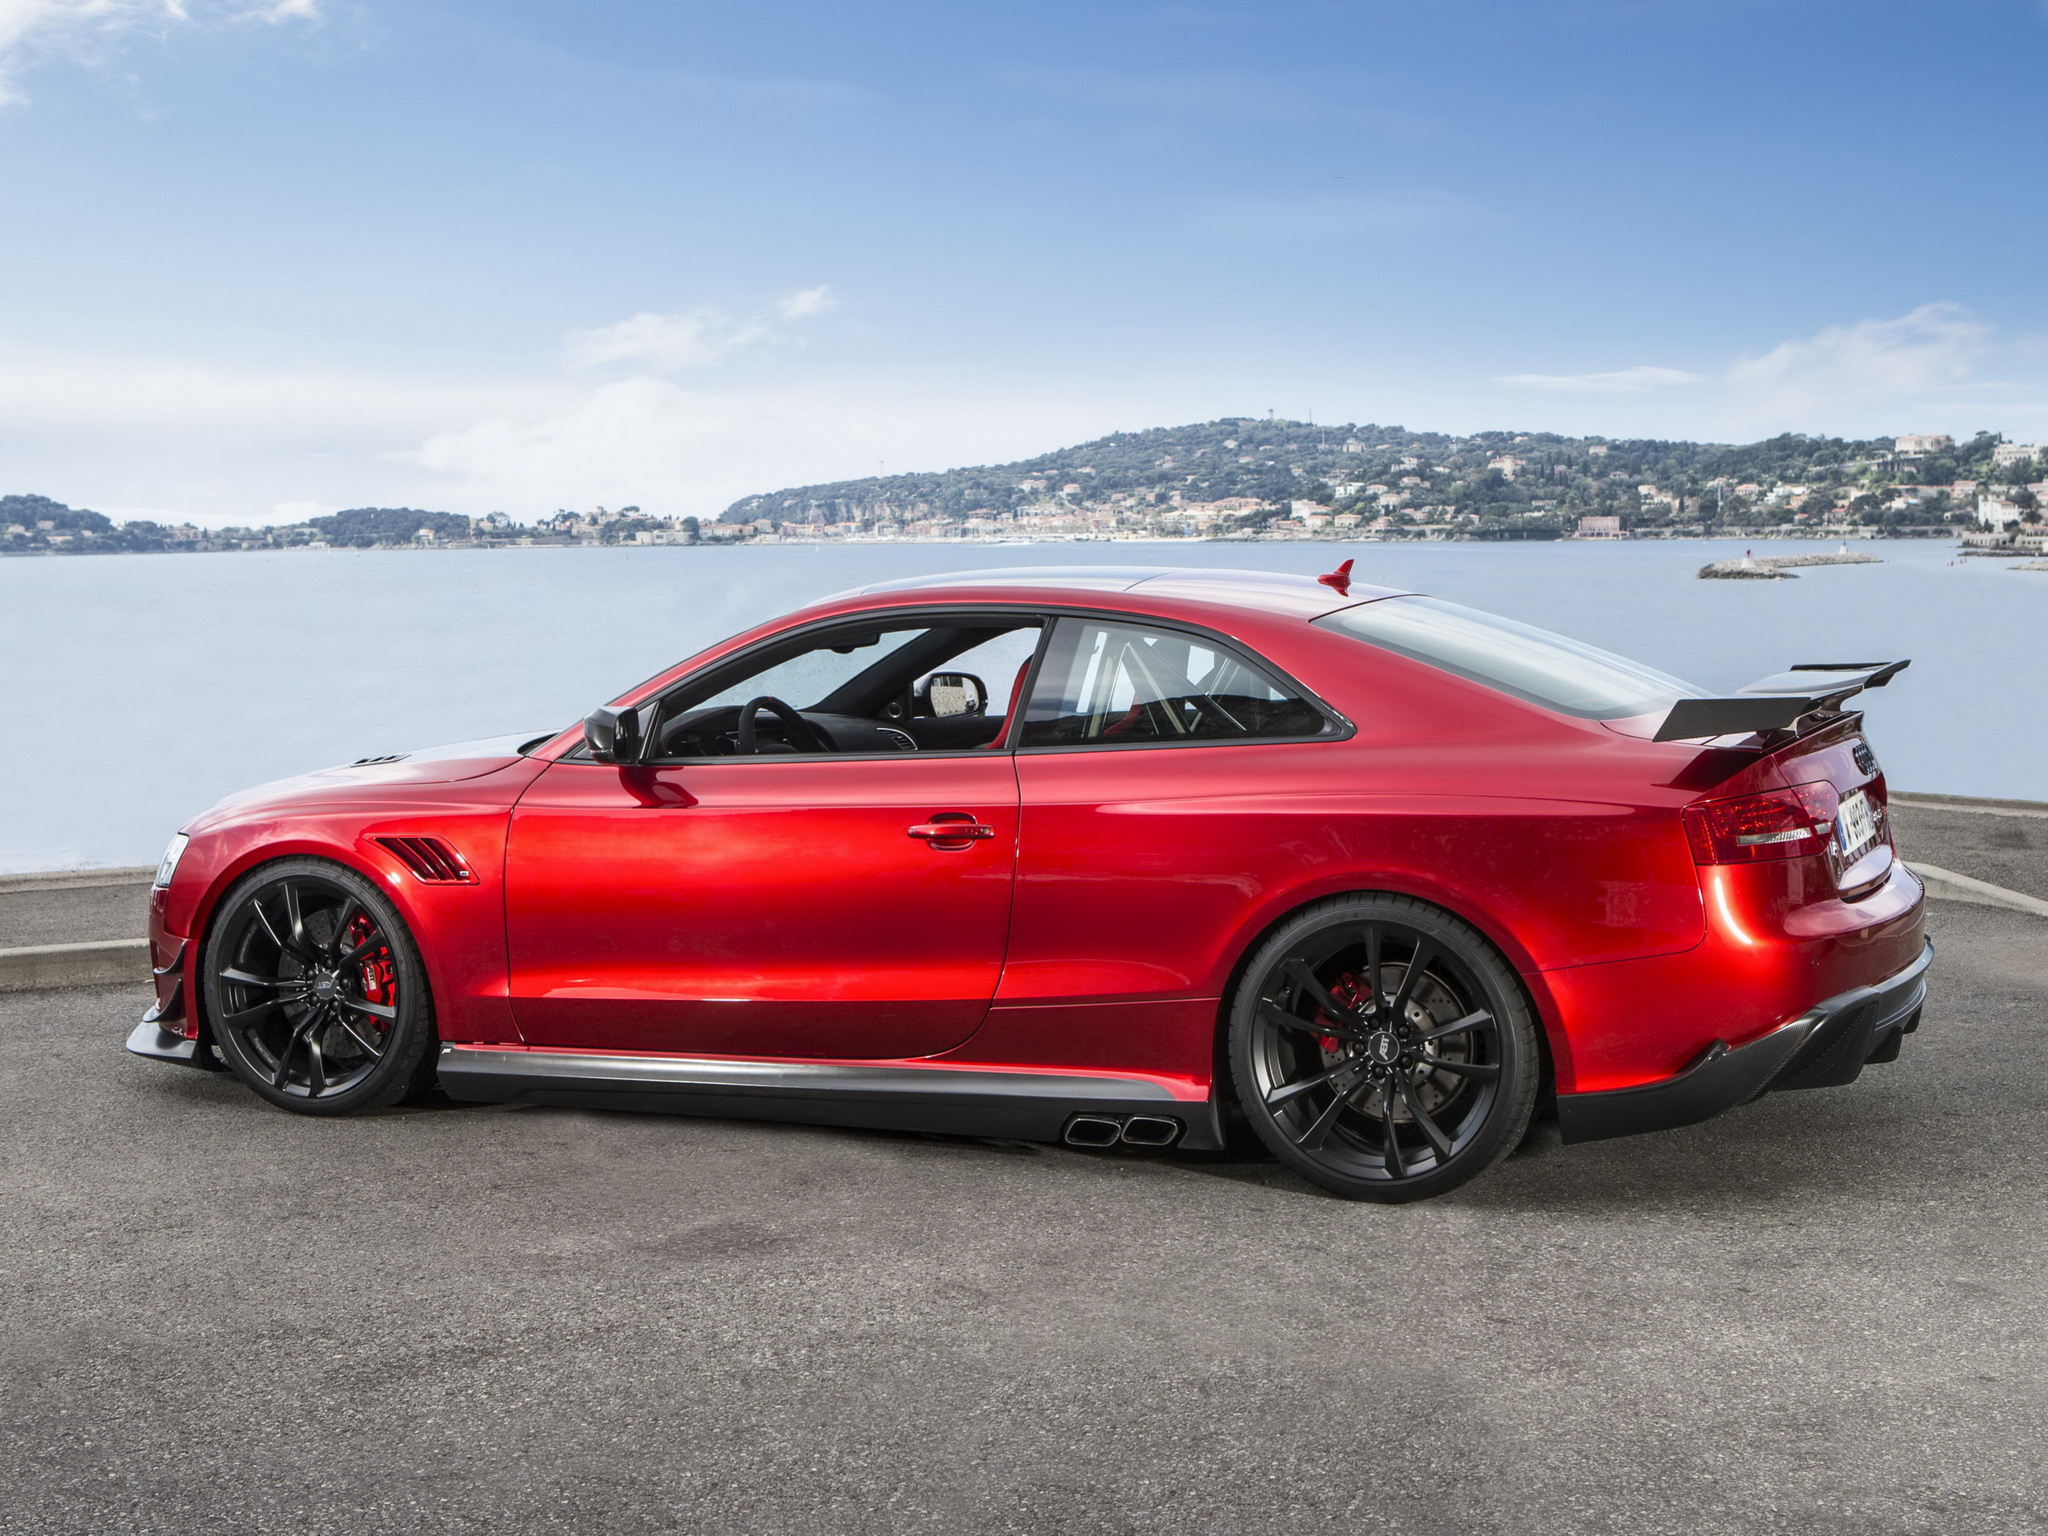 2014 Abt Audi Rs5 R Coupe Tuning R55 Wallpaper 2048x1536 168644 Wallpaperup